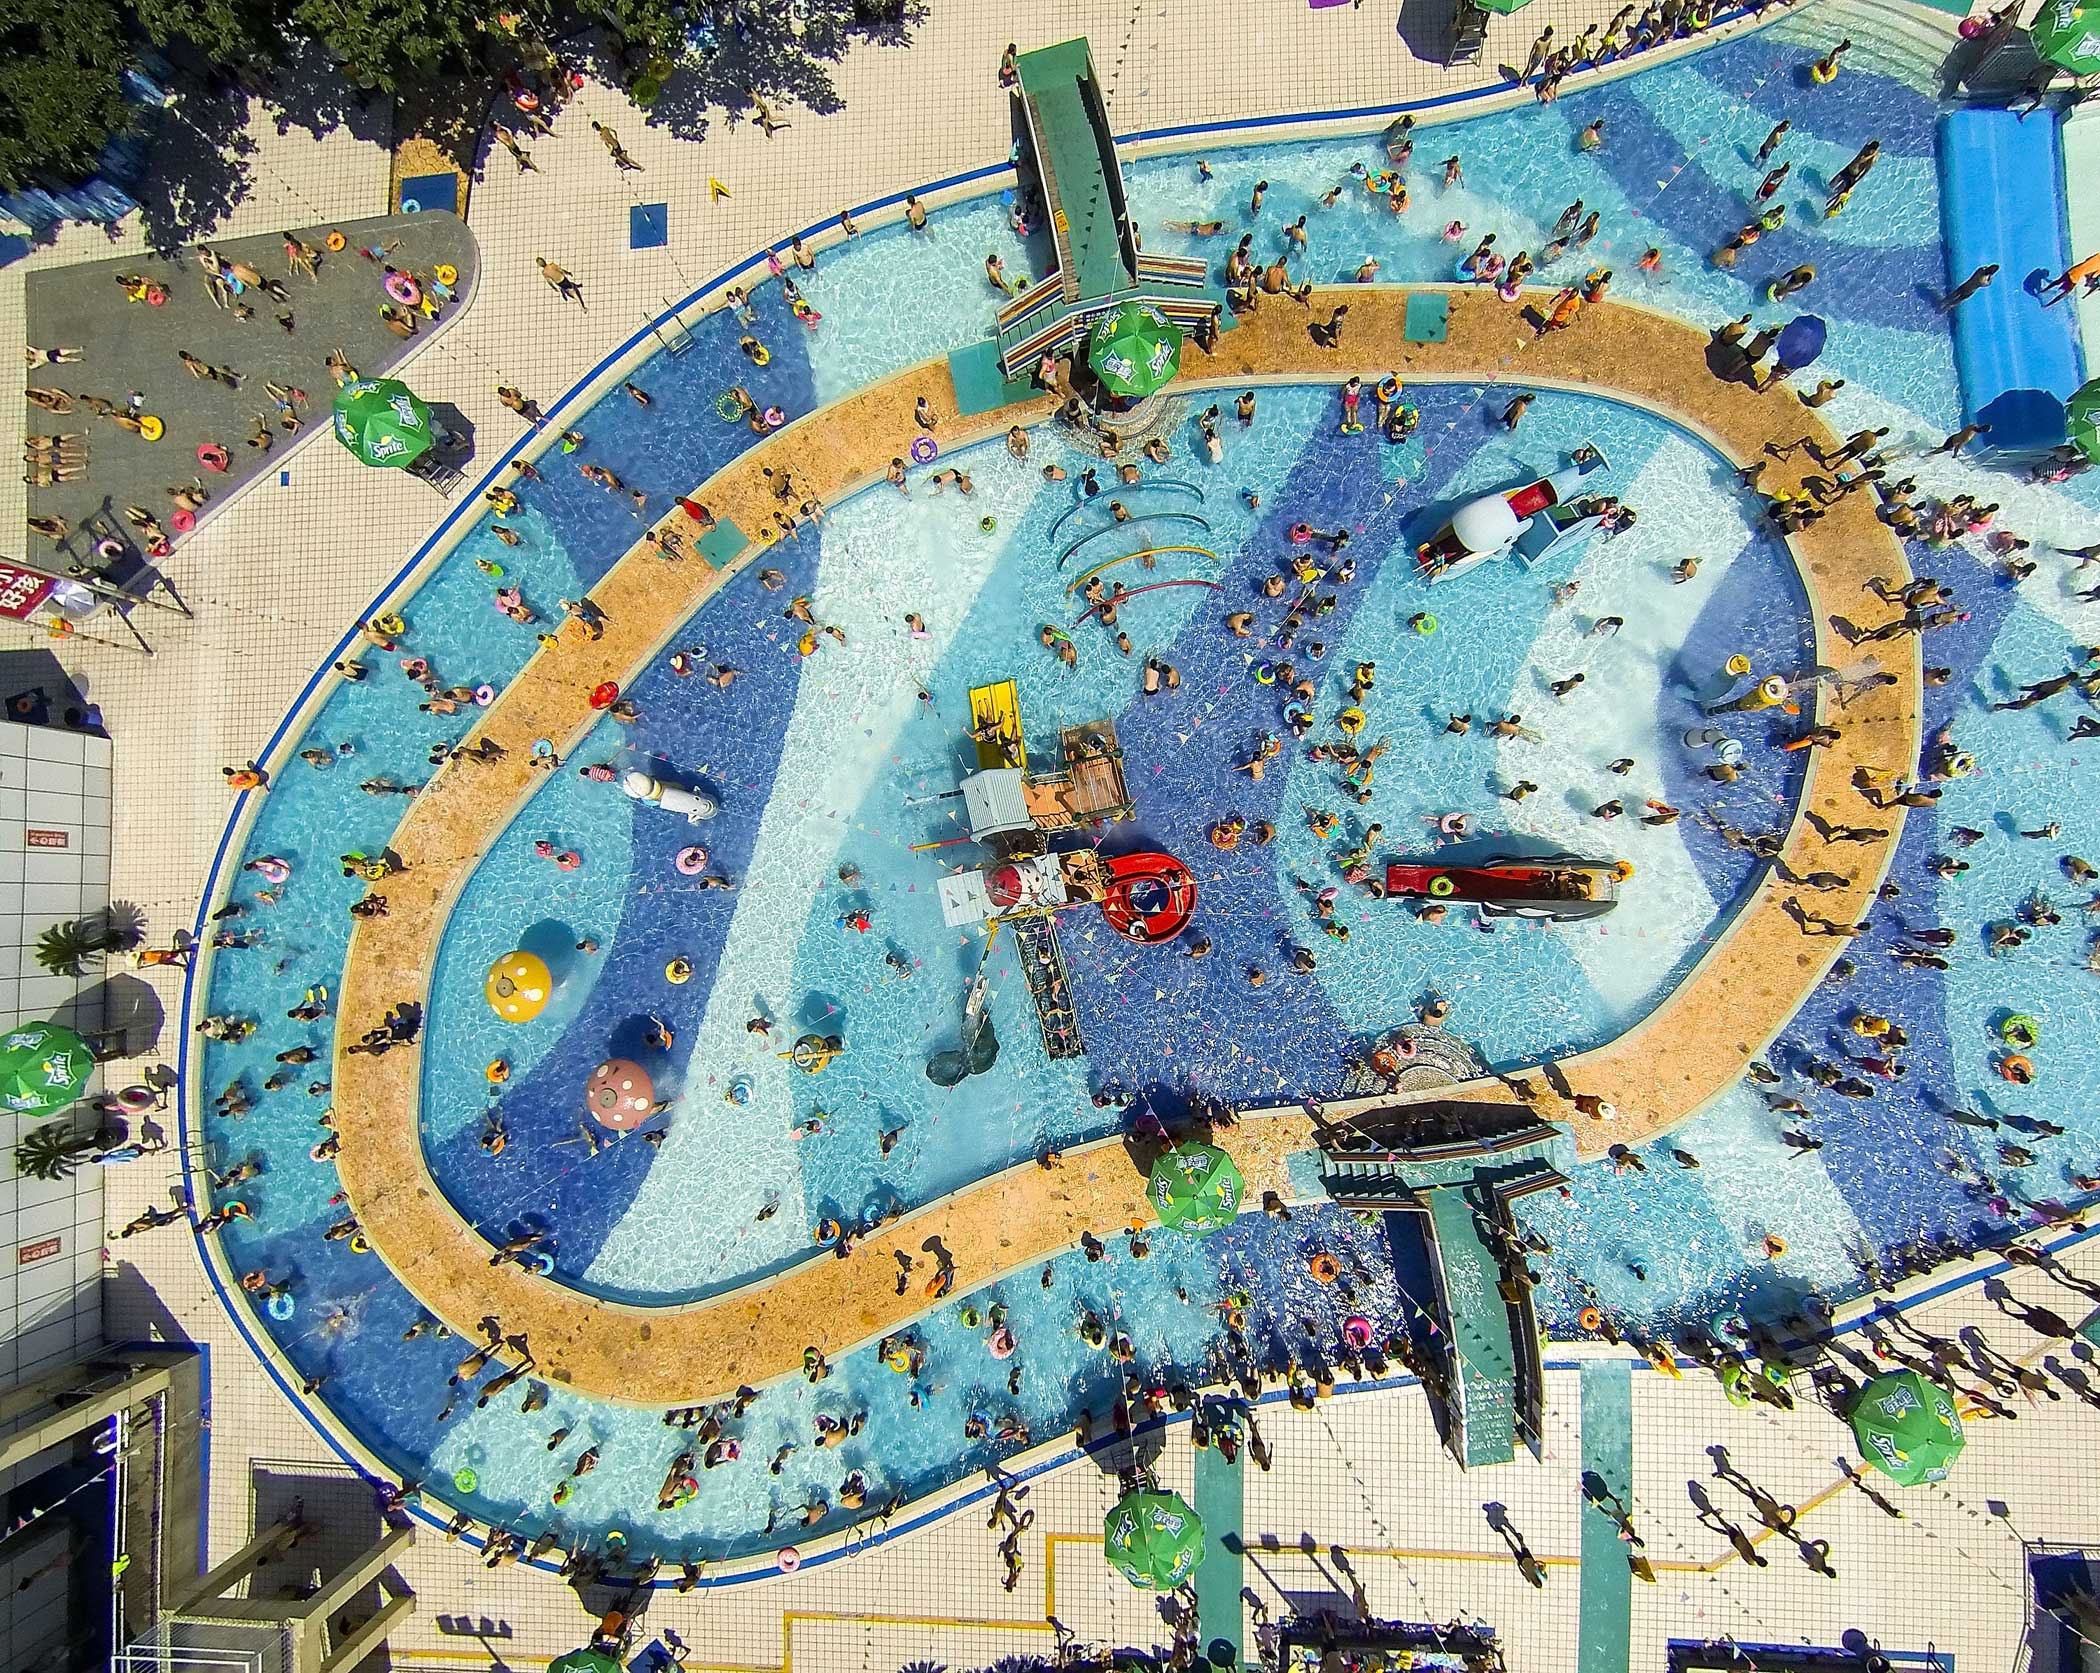 An overhead view of  the Mengzhuiwan pool in Chengdu, Sichuan province in China.